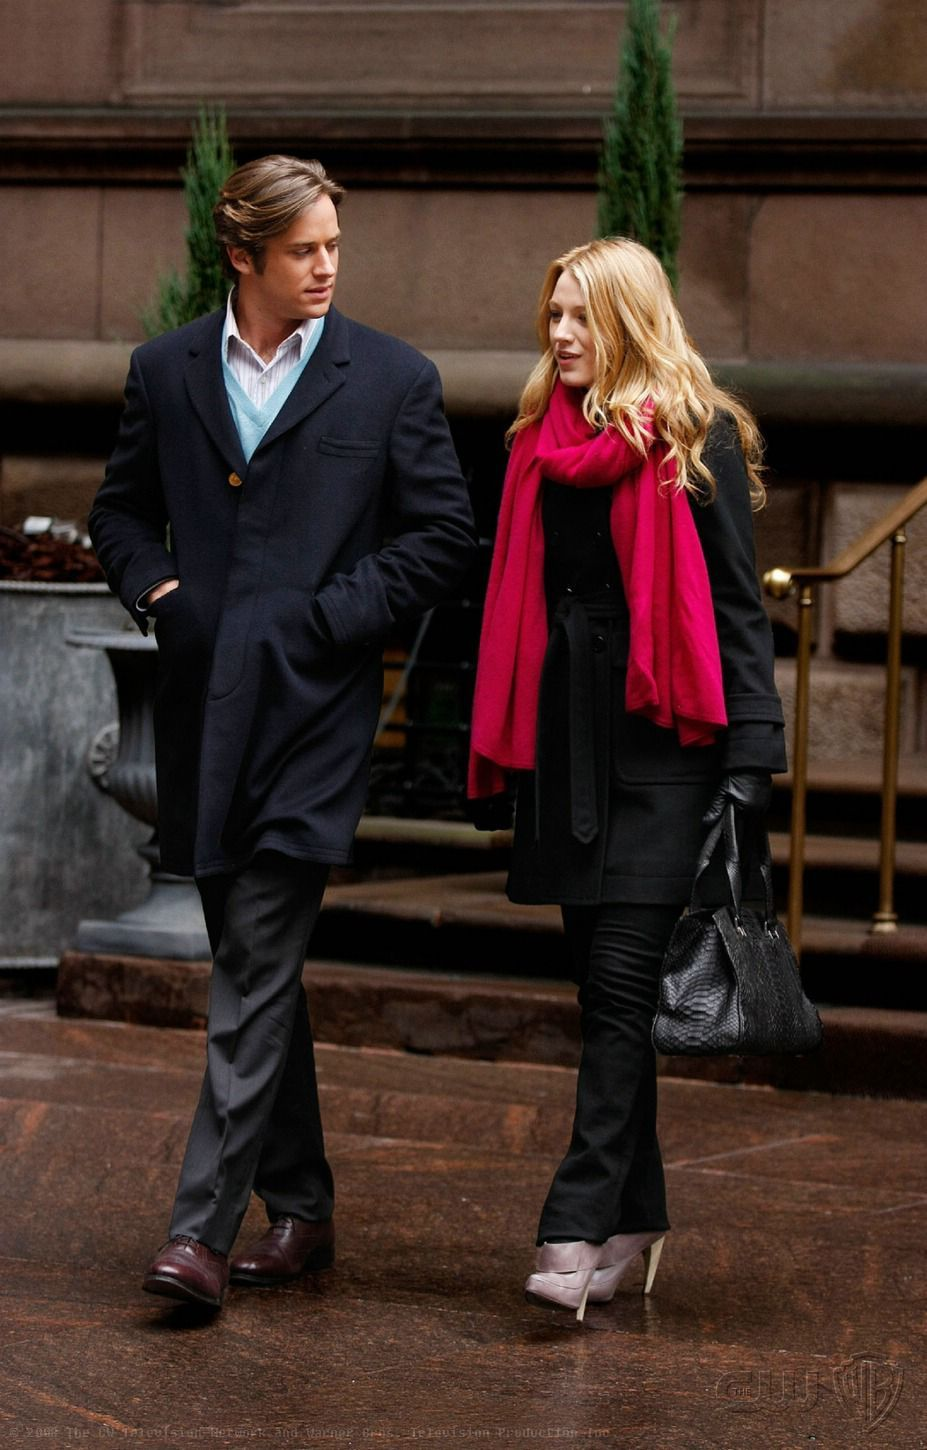 eafb997374f3 Armie Hammer guest starred in four episodes of Gossip Girl alongside Blake  Lively.